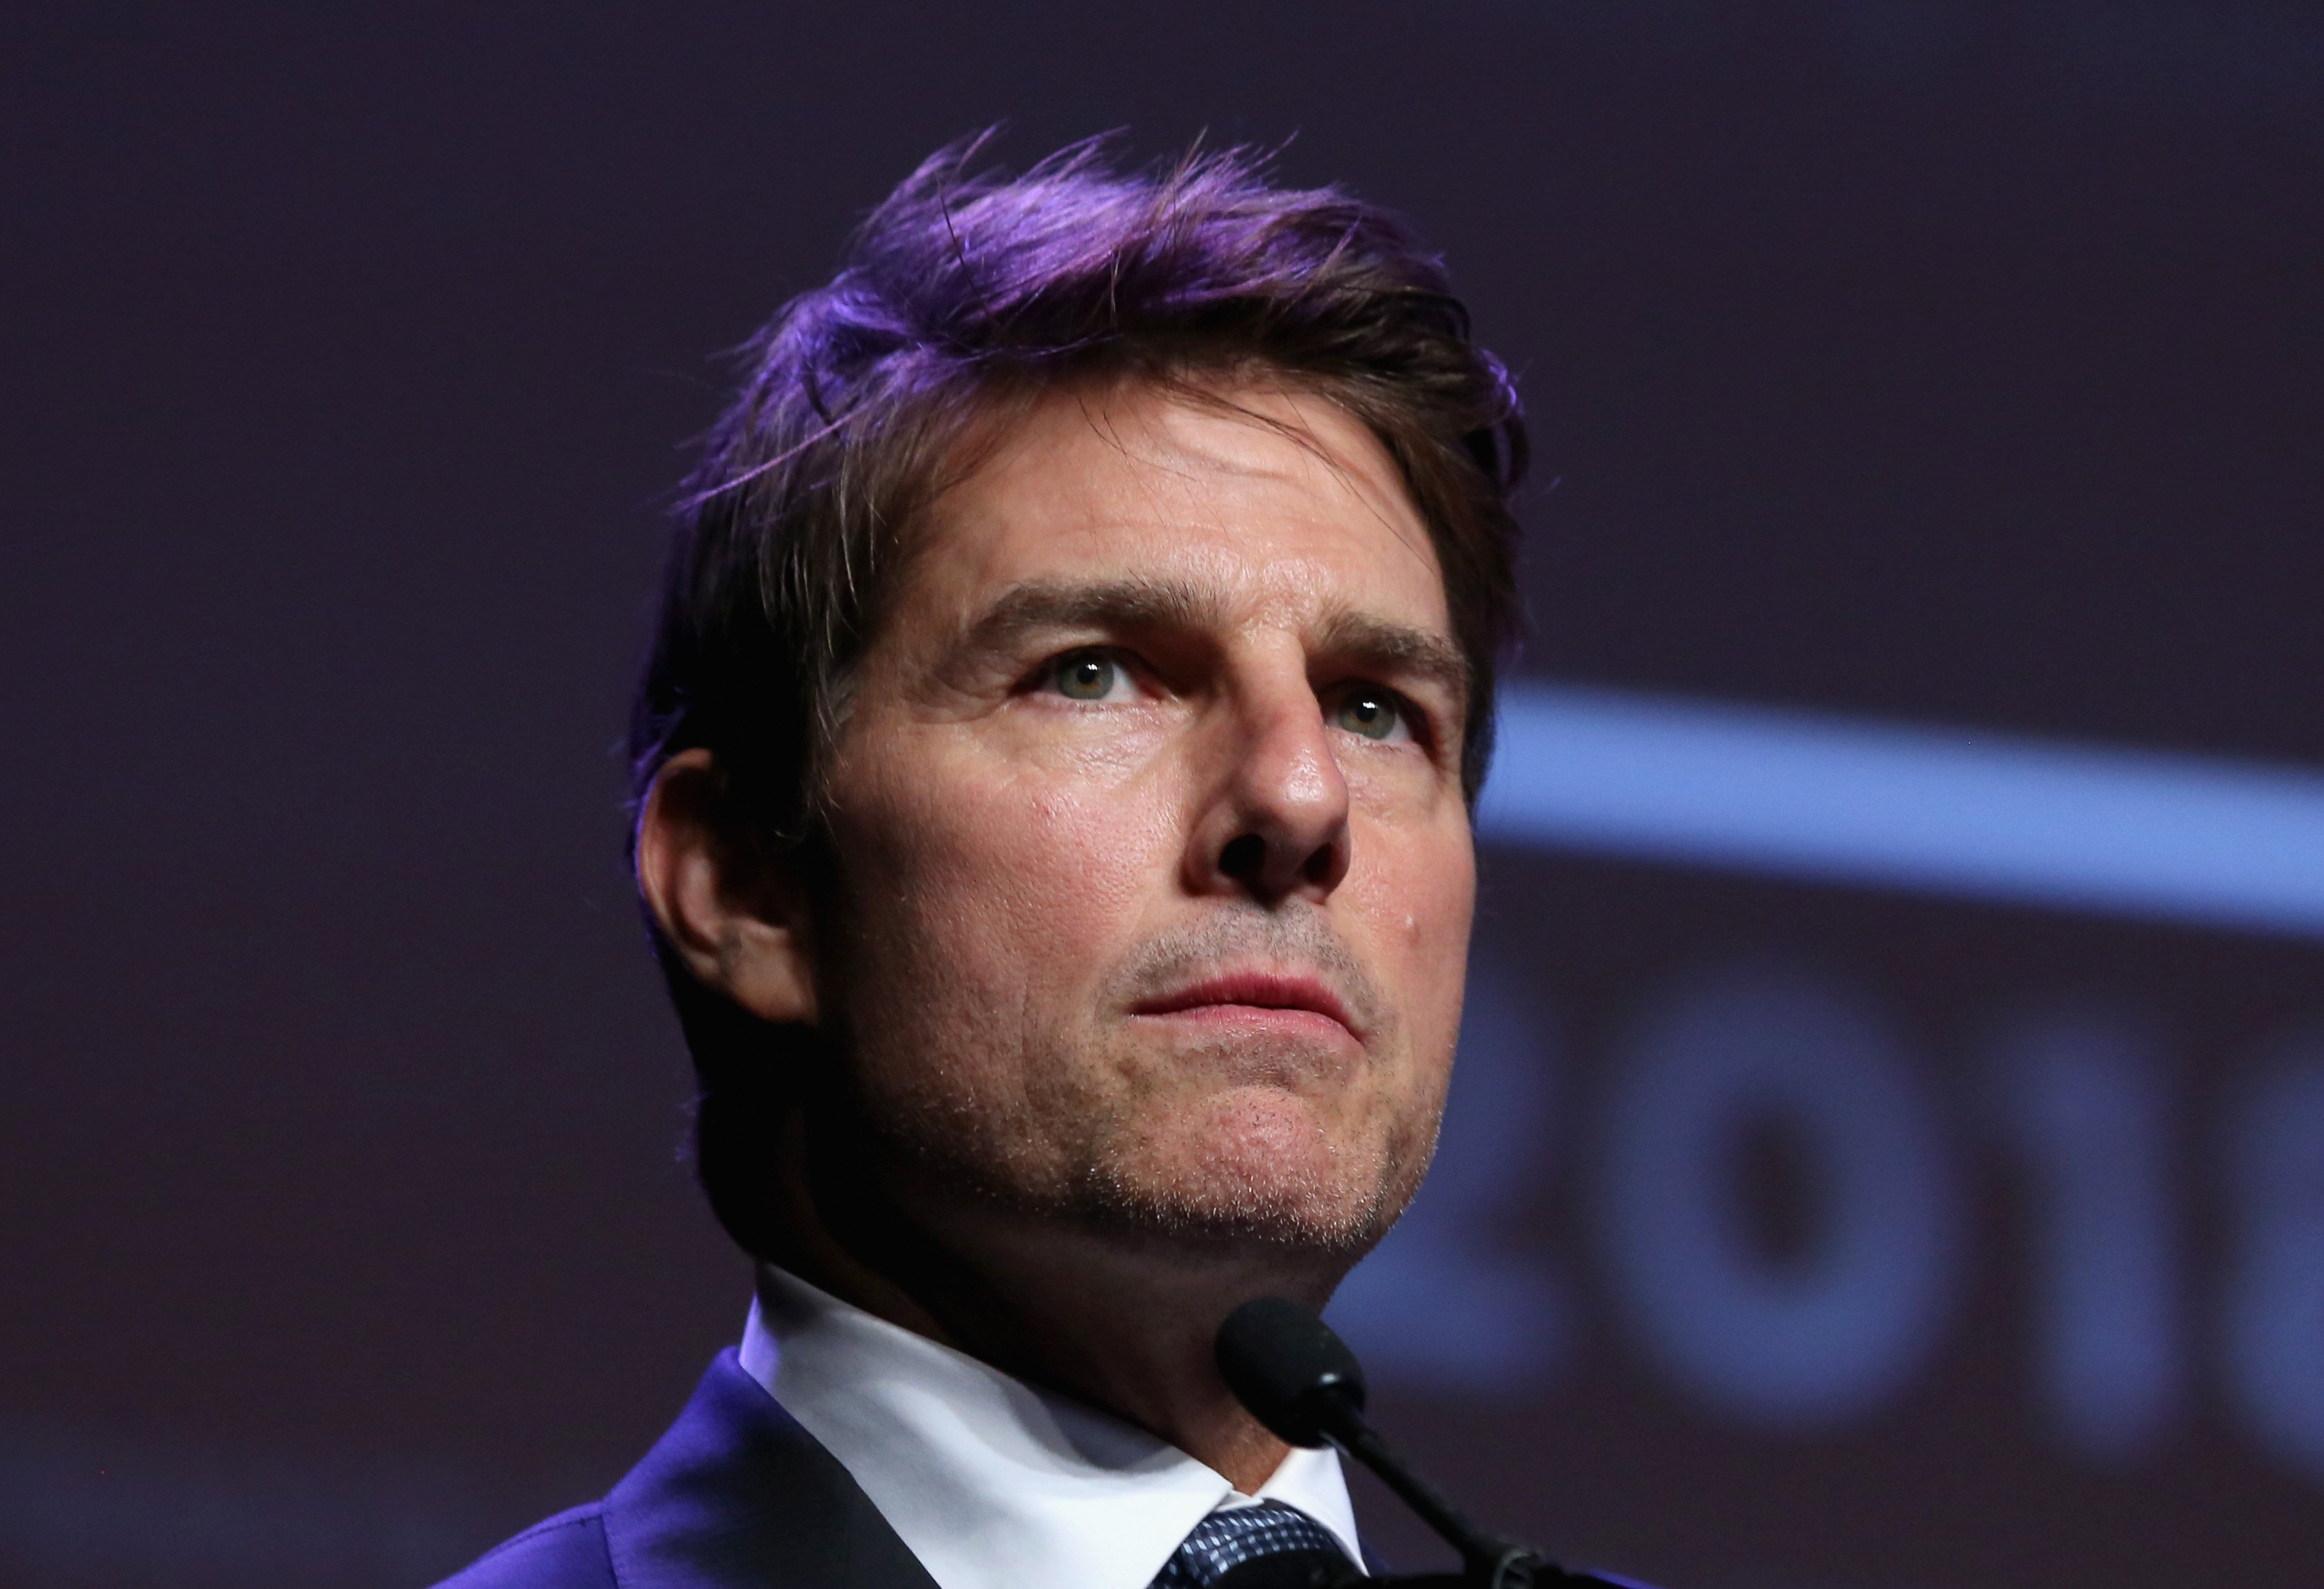 Tom Cruise speaks during the 2018 Will Rogers Pioneer of the Year Dinner Honoring Him, on April 25, 2018 in Las Vegas, Nevada. | Photo: GettyImages